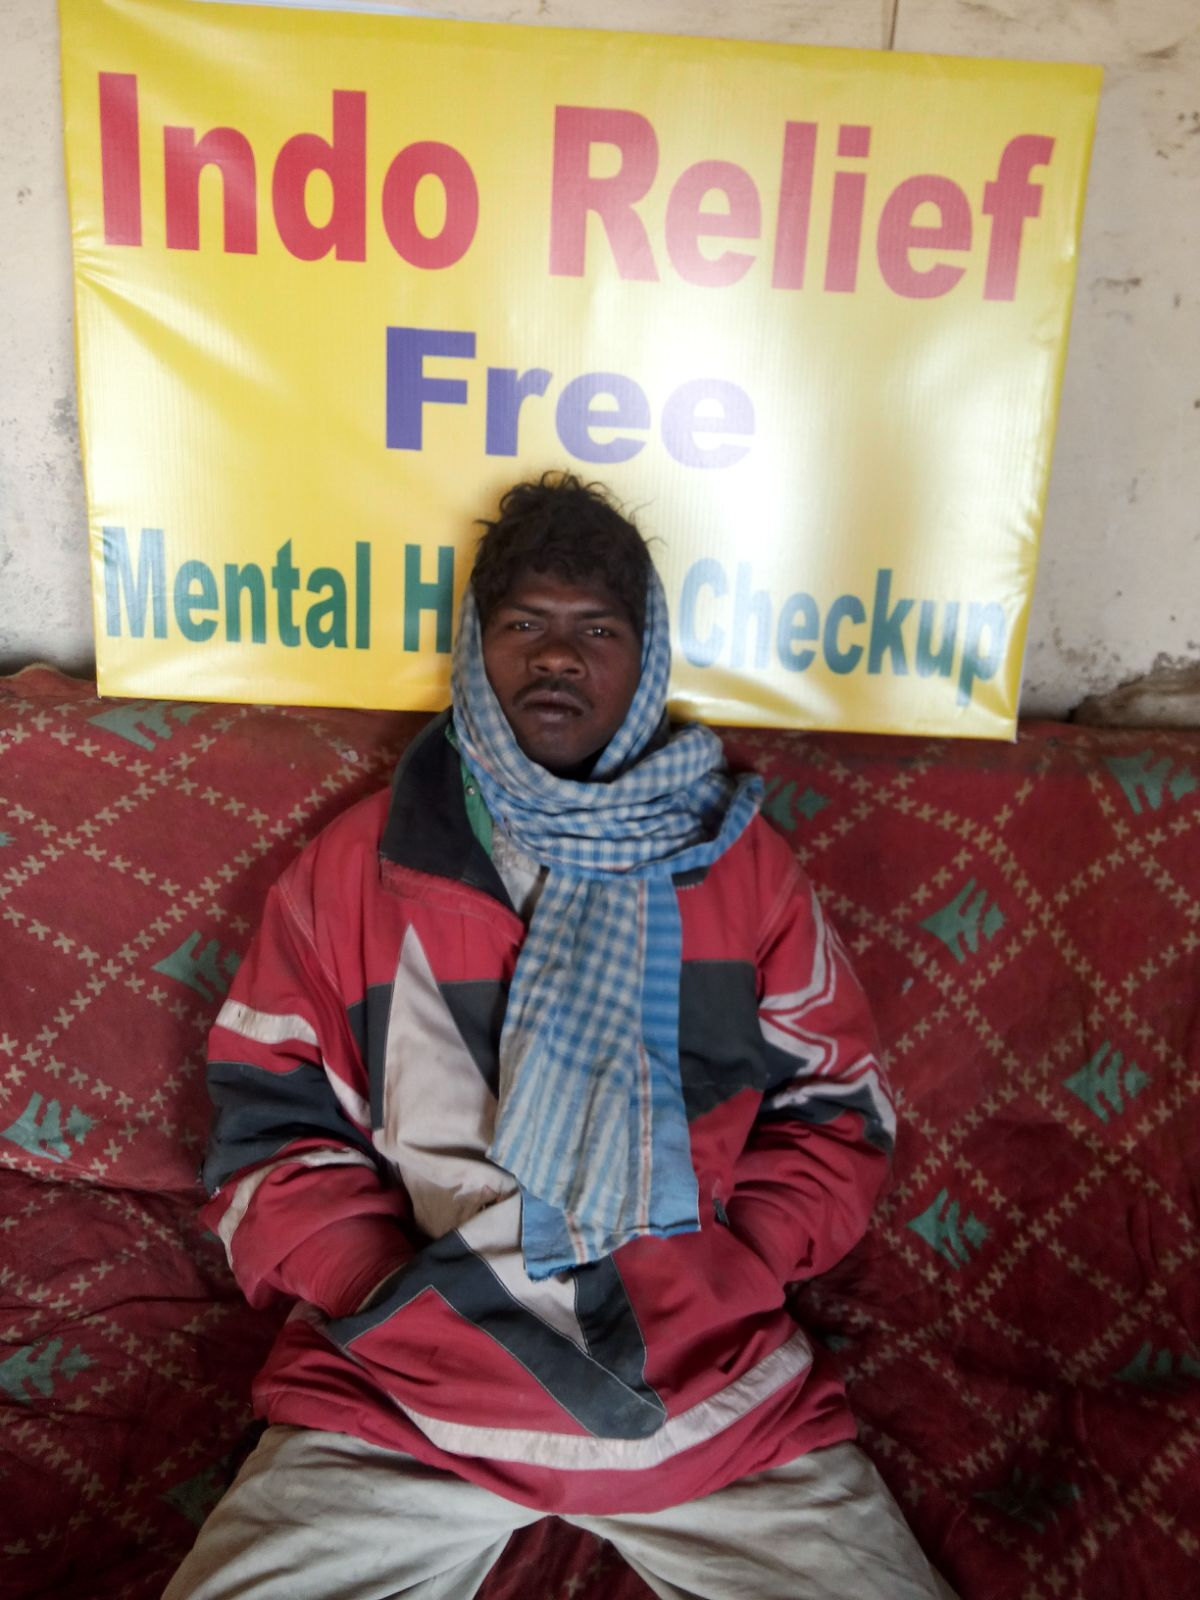 This is Sameer. His brother died one year ago from untreated tuberculosis. He says that he has had many emotional outbursts since then. He wants grief counseling.